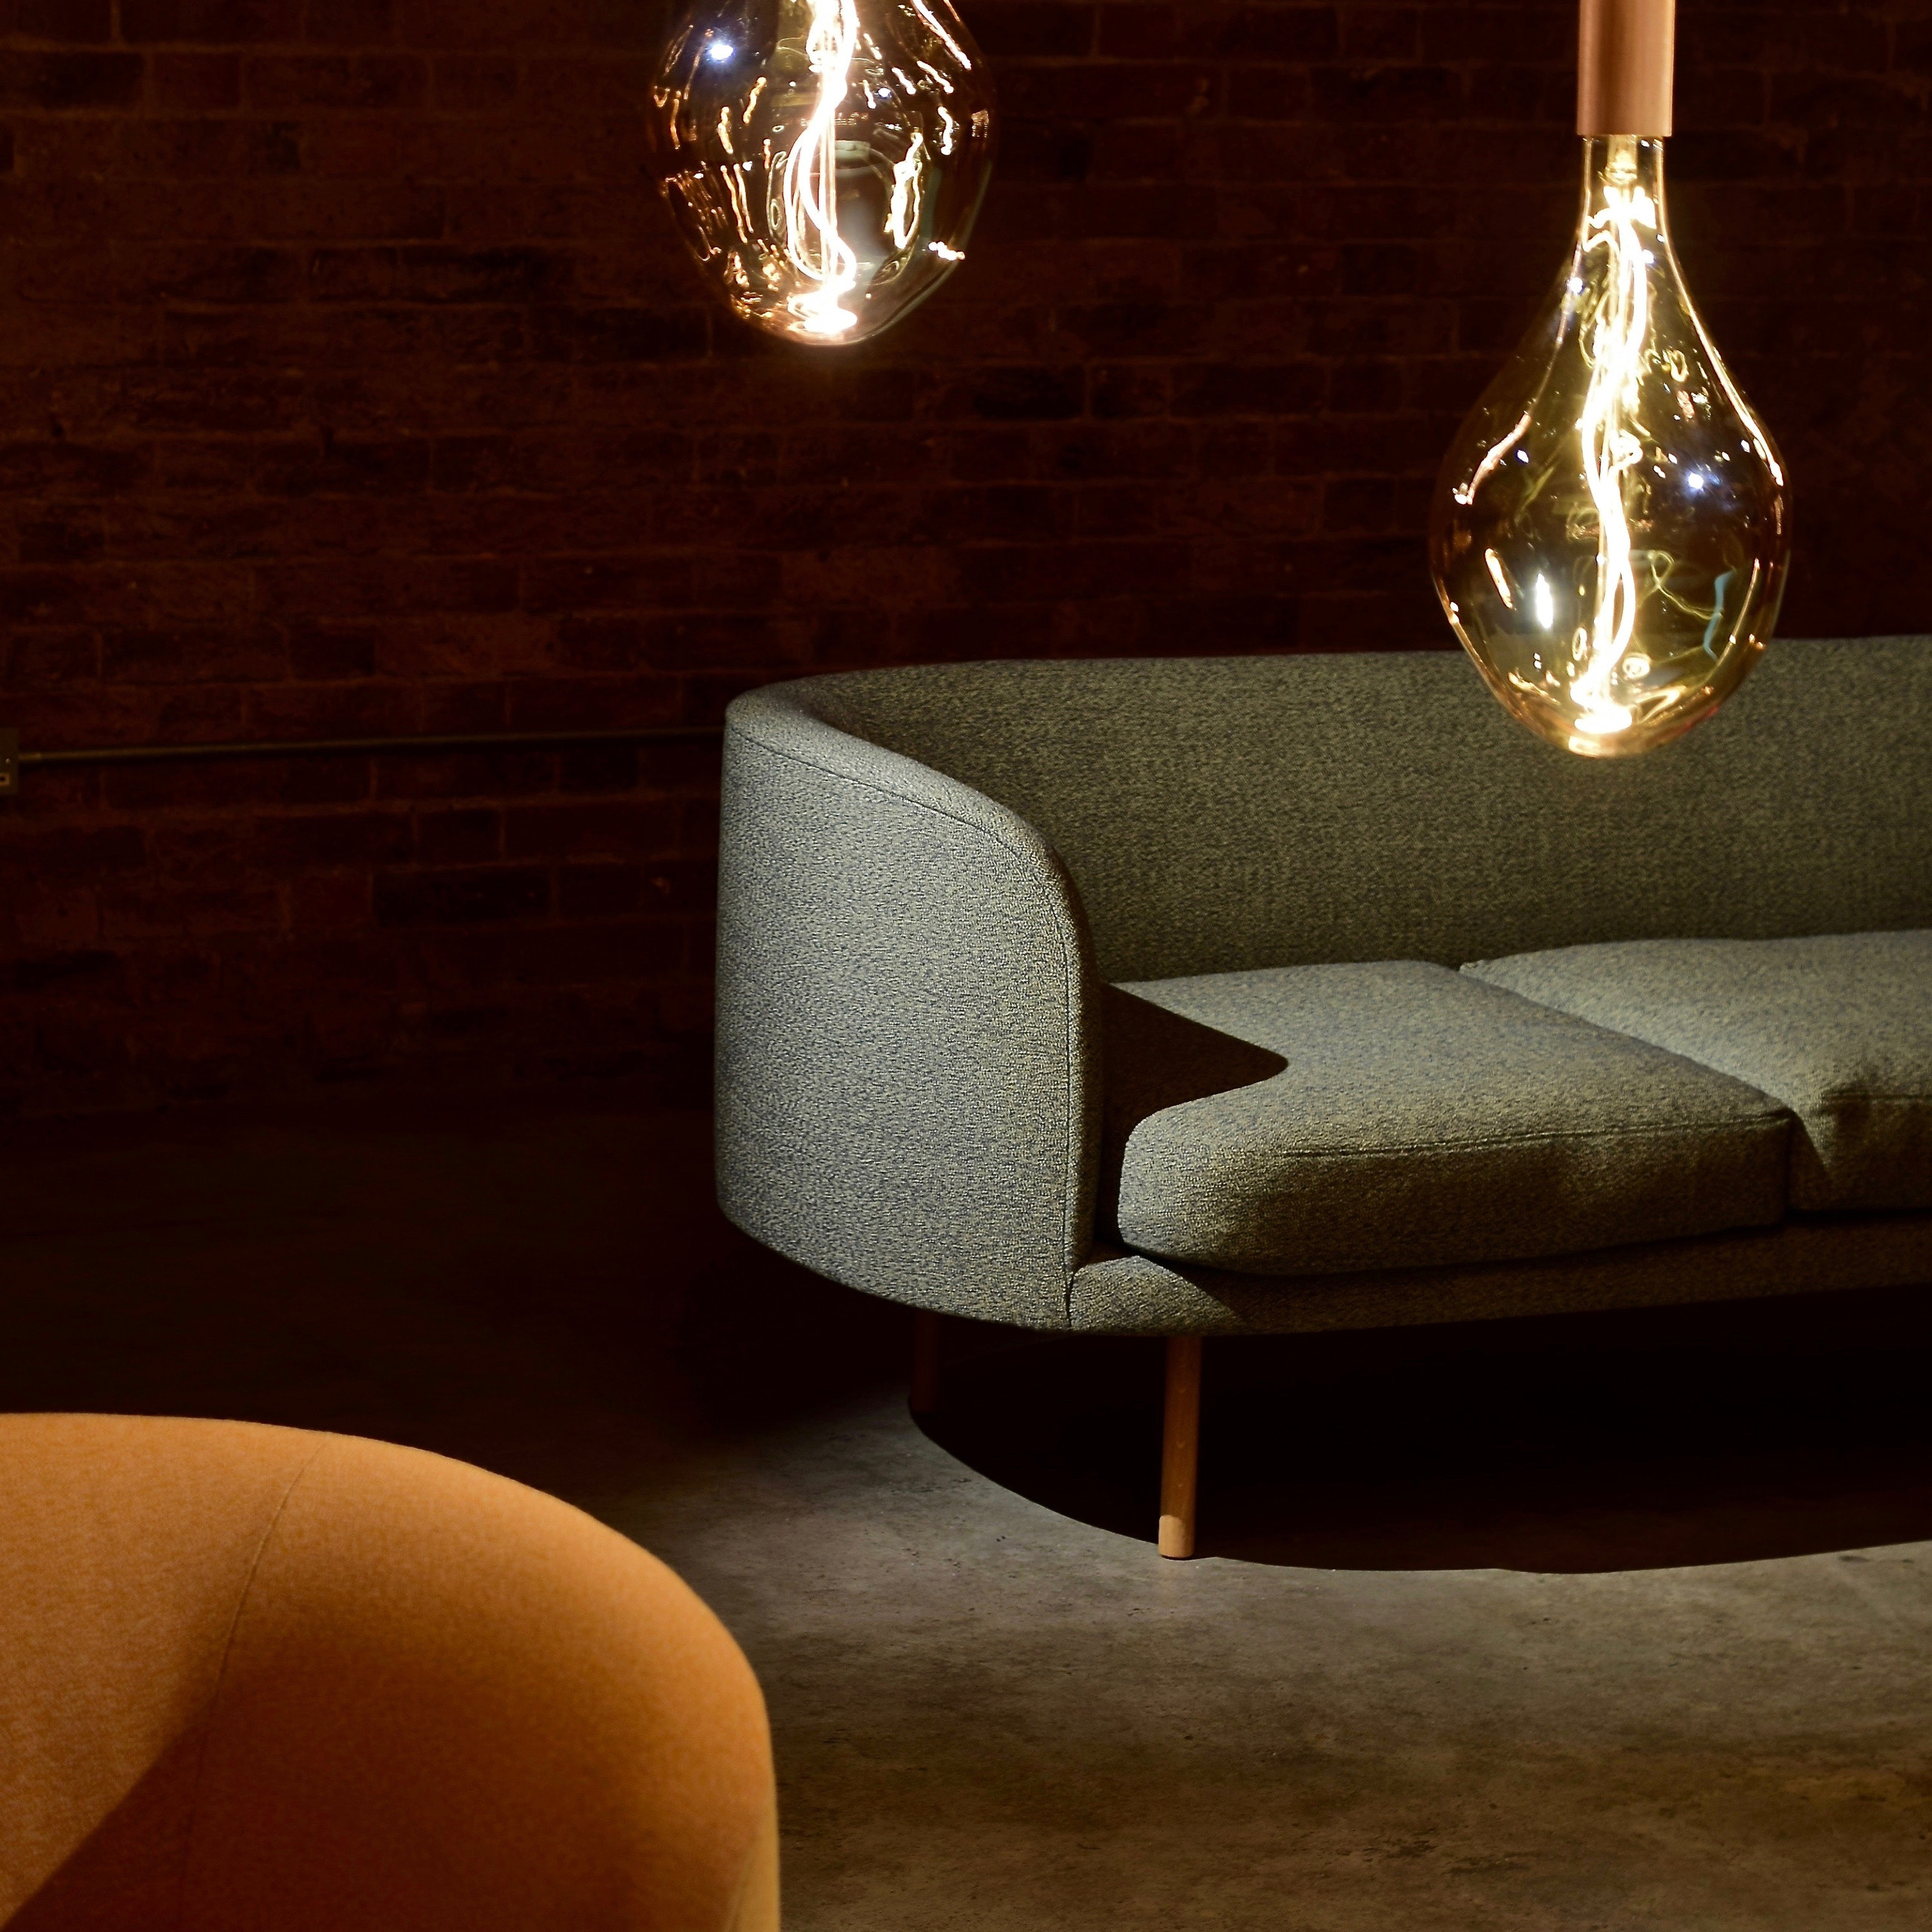 Beautiful interiors photography with a sofa and lighting